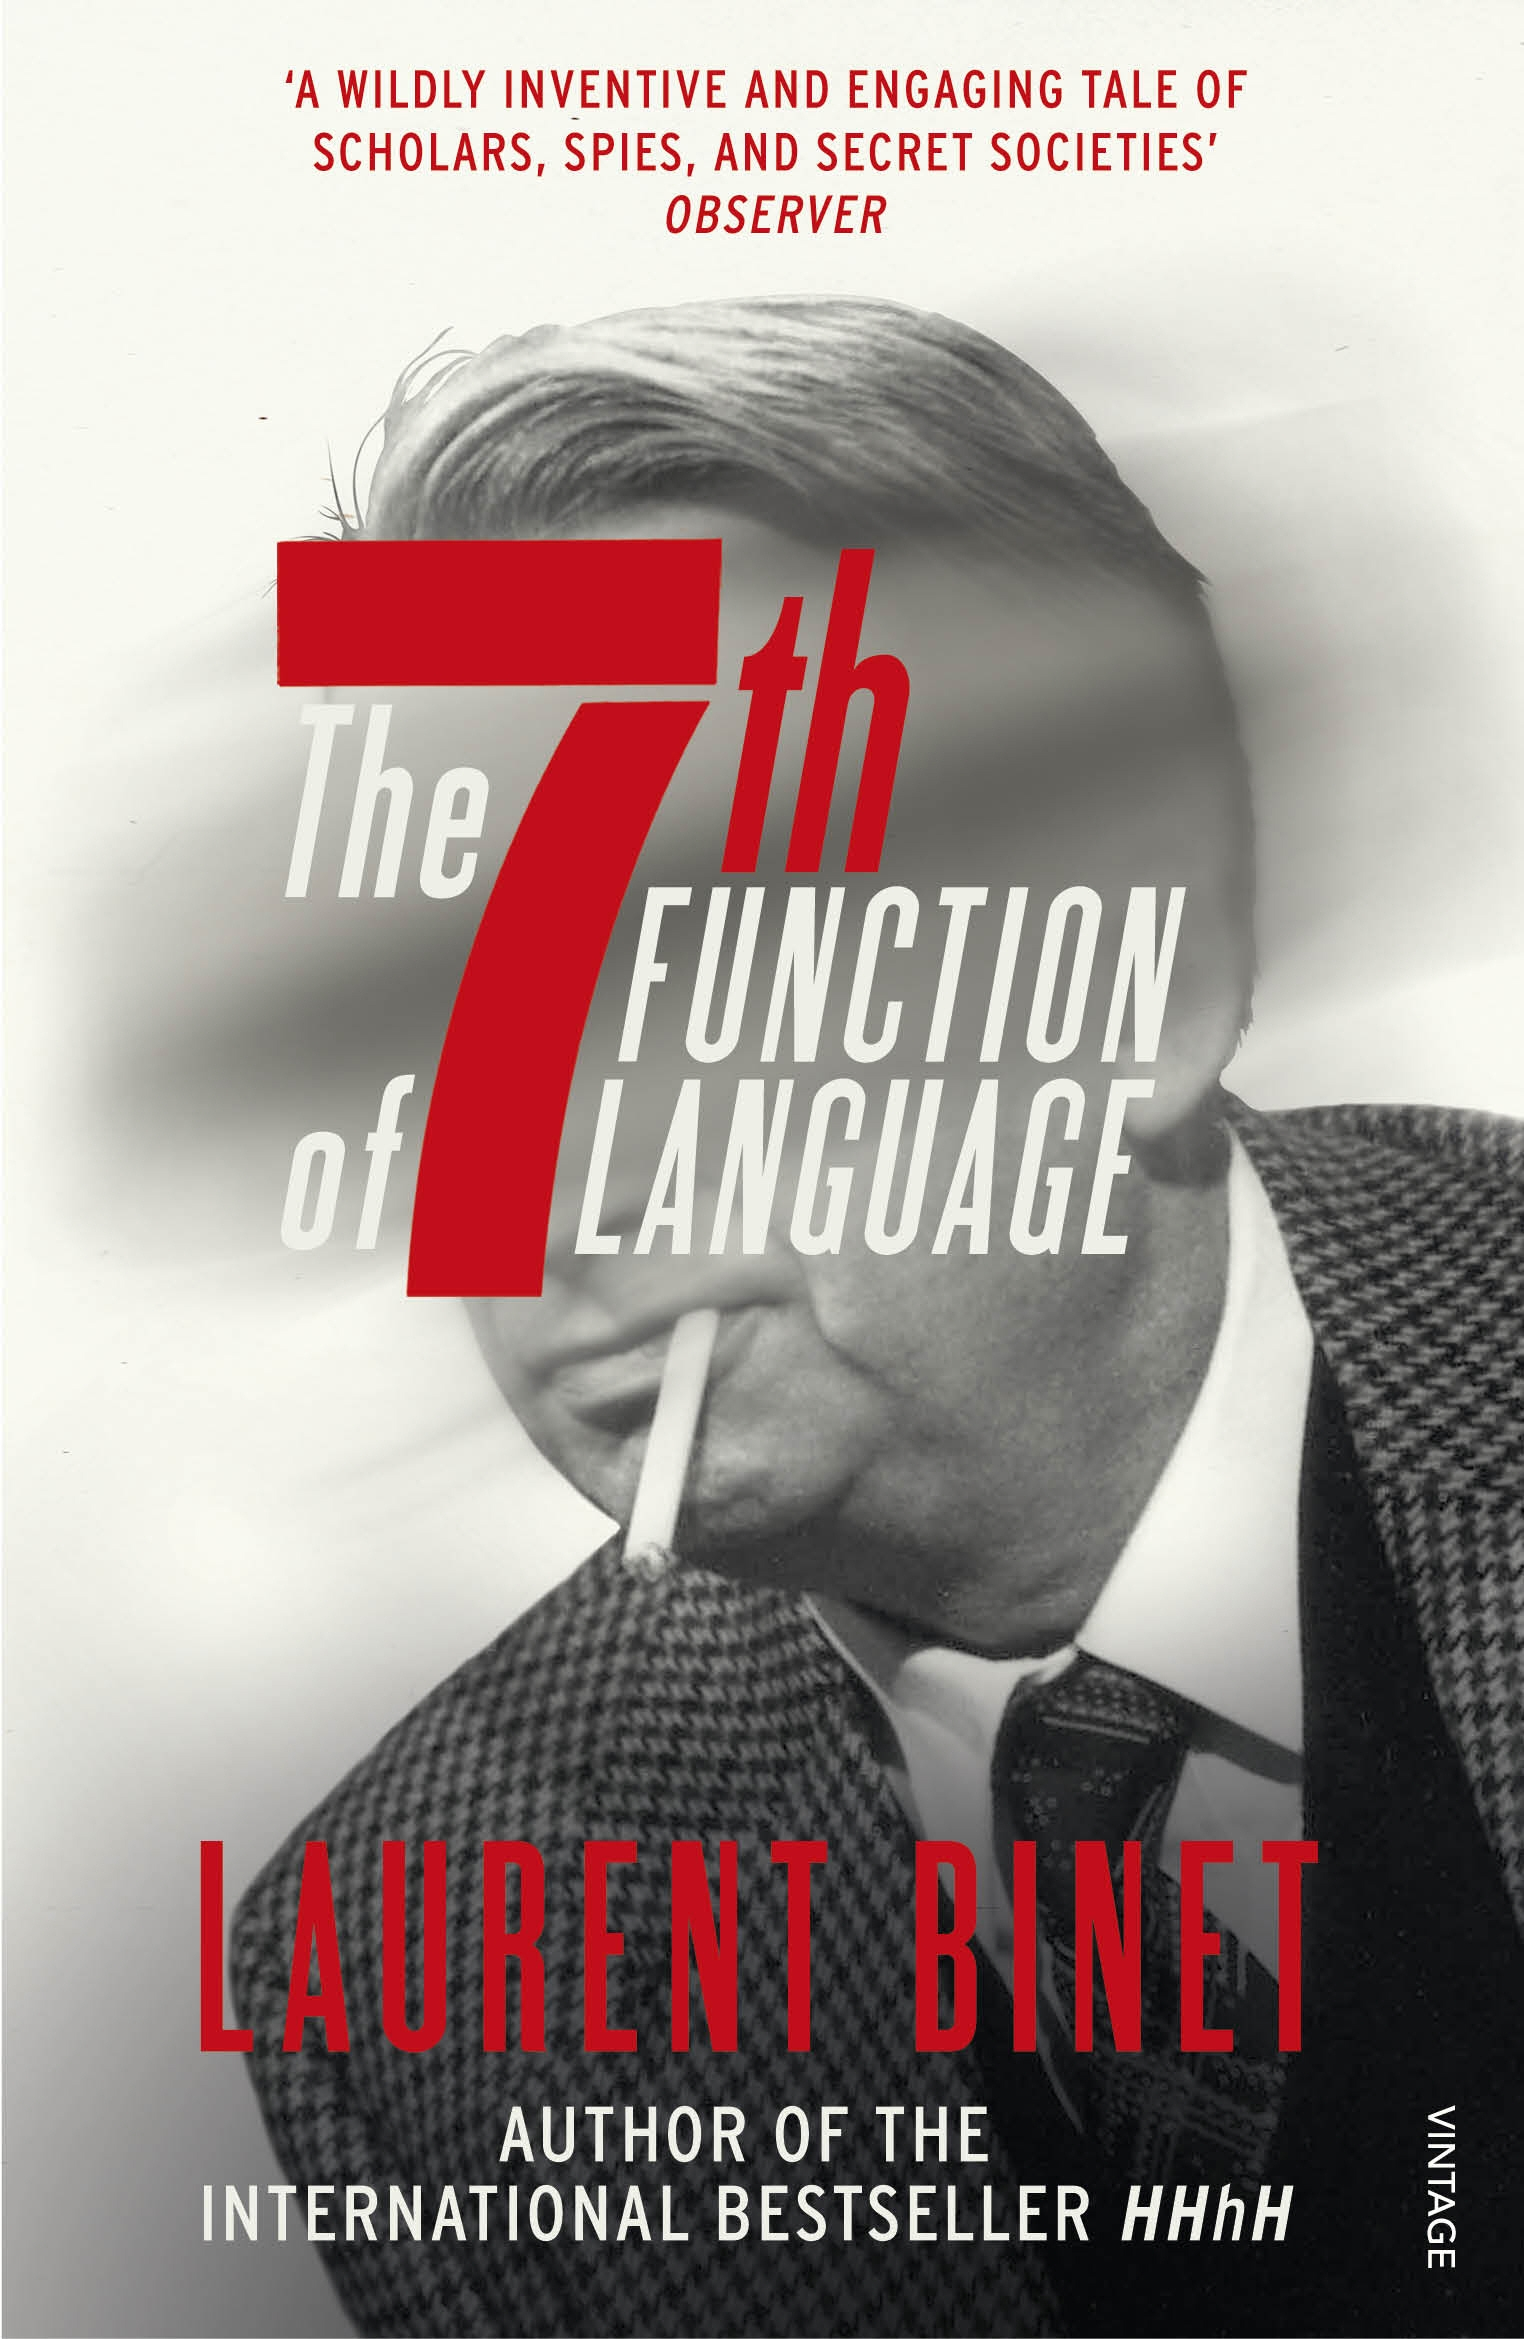 The 7th Function of Language by Laurent Binet, ISBN: 9781784703196